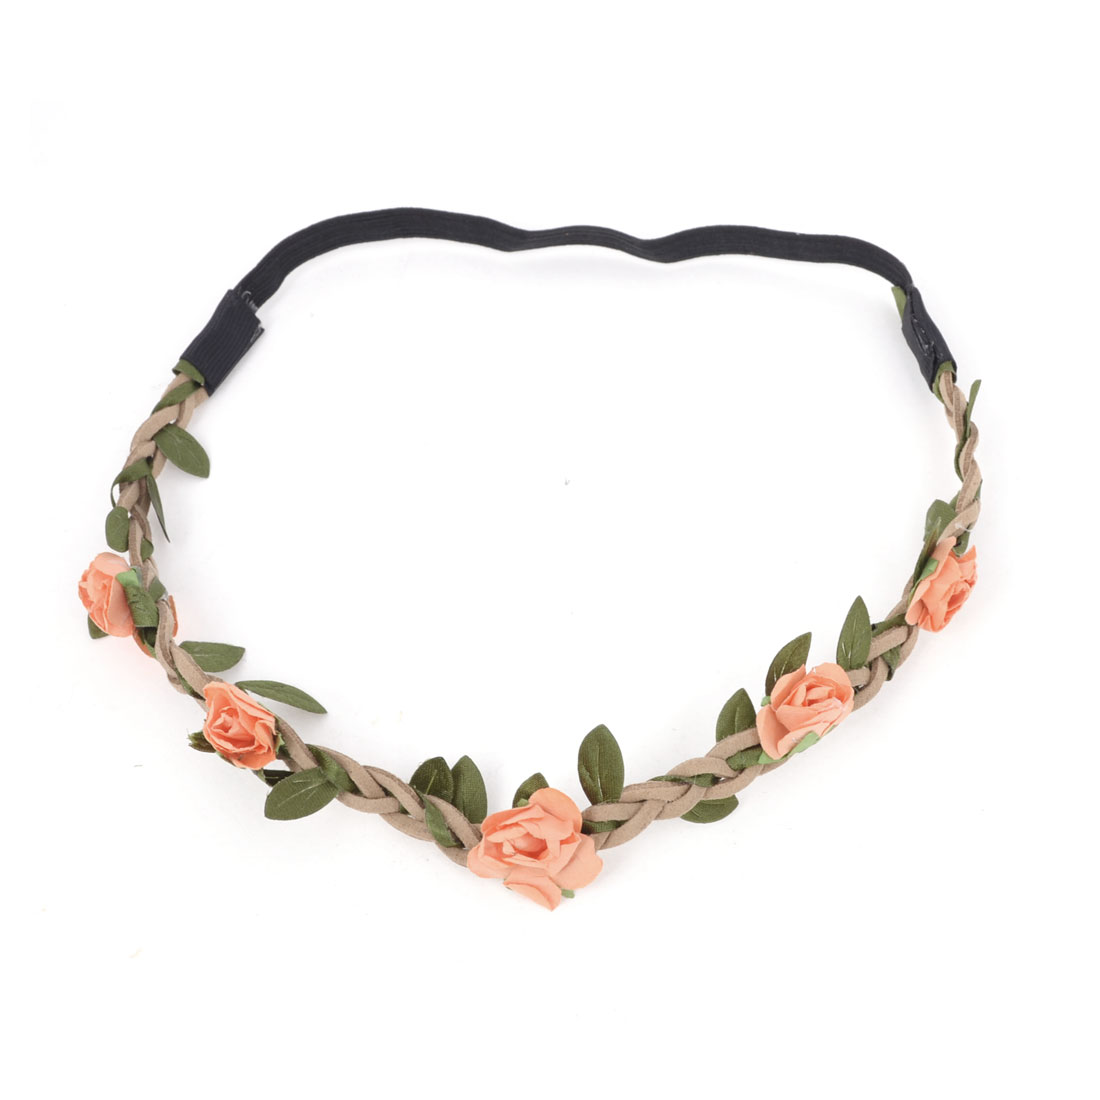 Boho Style Orange Flowers Inlaid Elastic Hair Accessory Head Band for Ladies